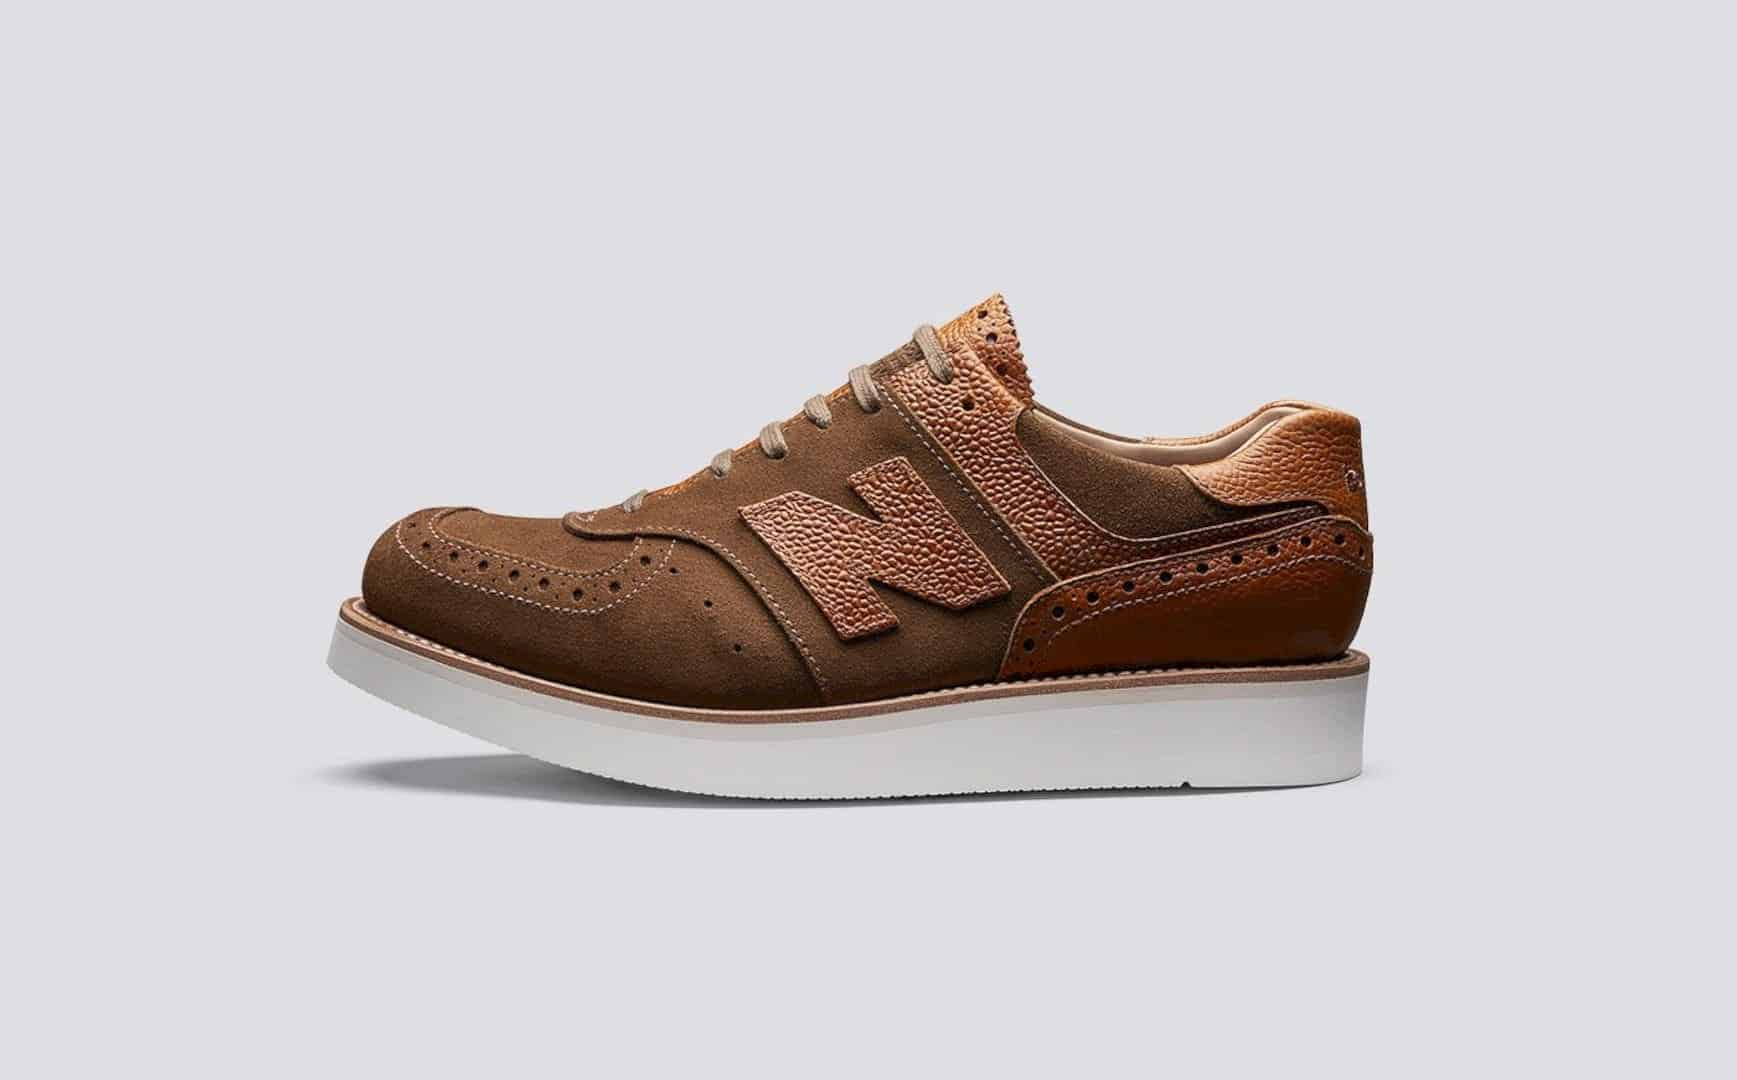 Grenson x New Balance M576: Best Shoes for Men